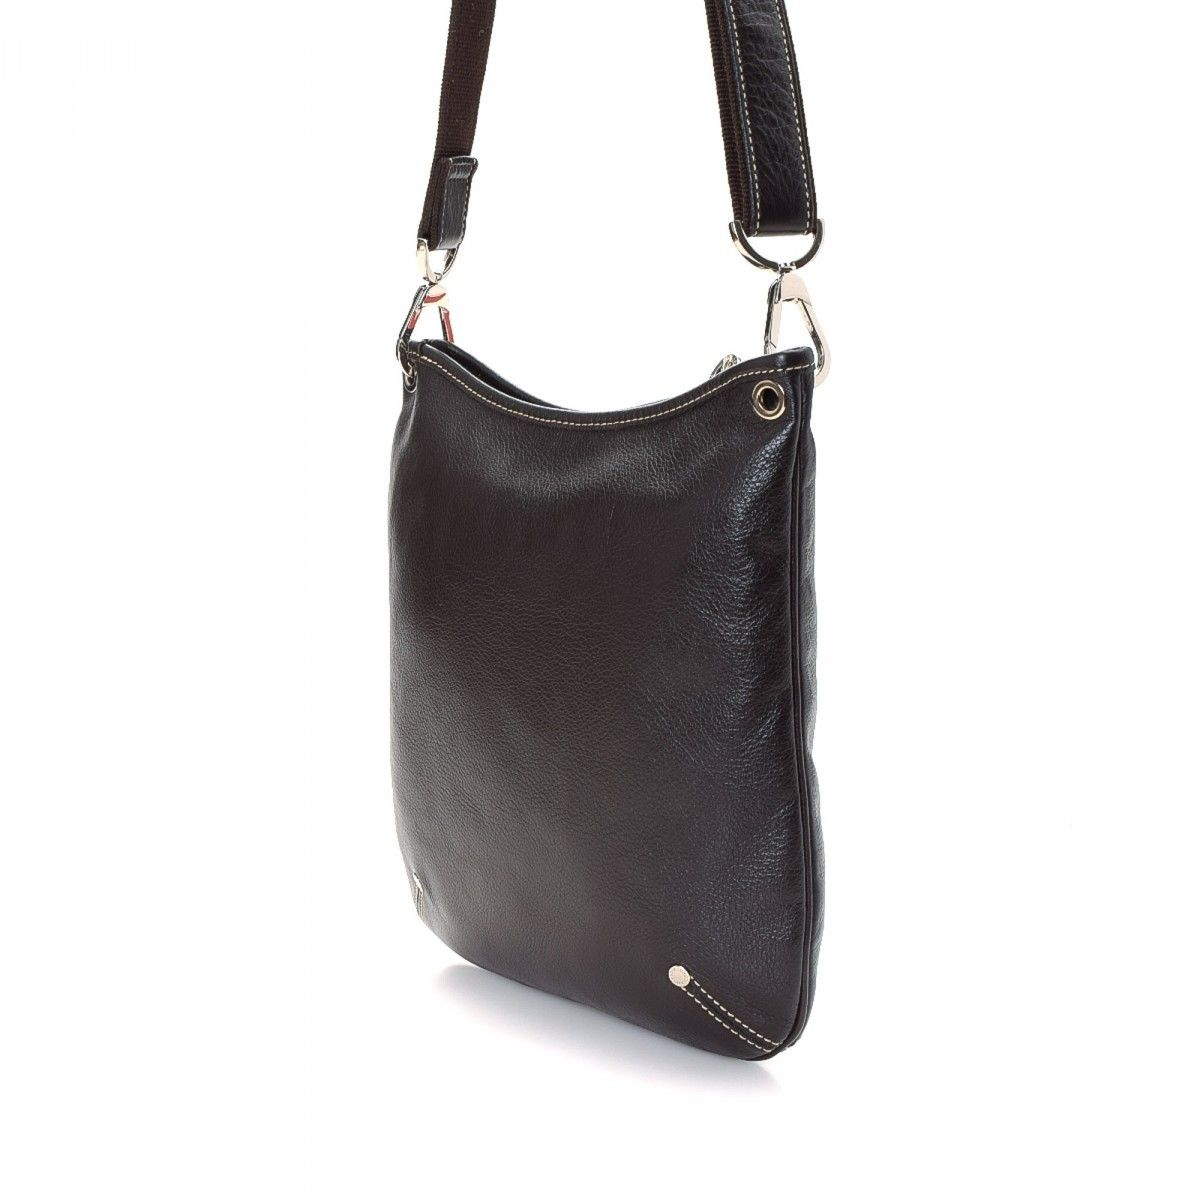 Longchamp Crossbody Bags For Women Jaguar Clubs Of North